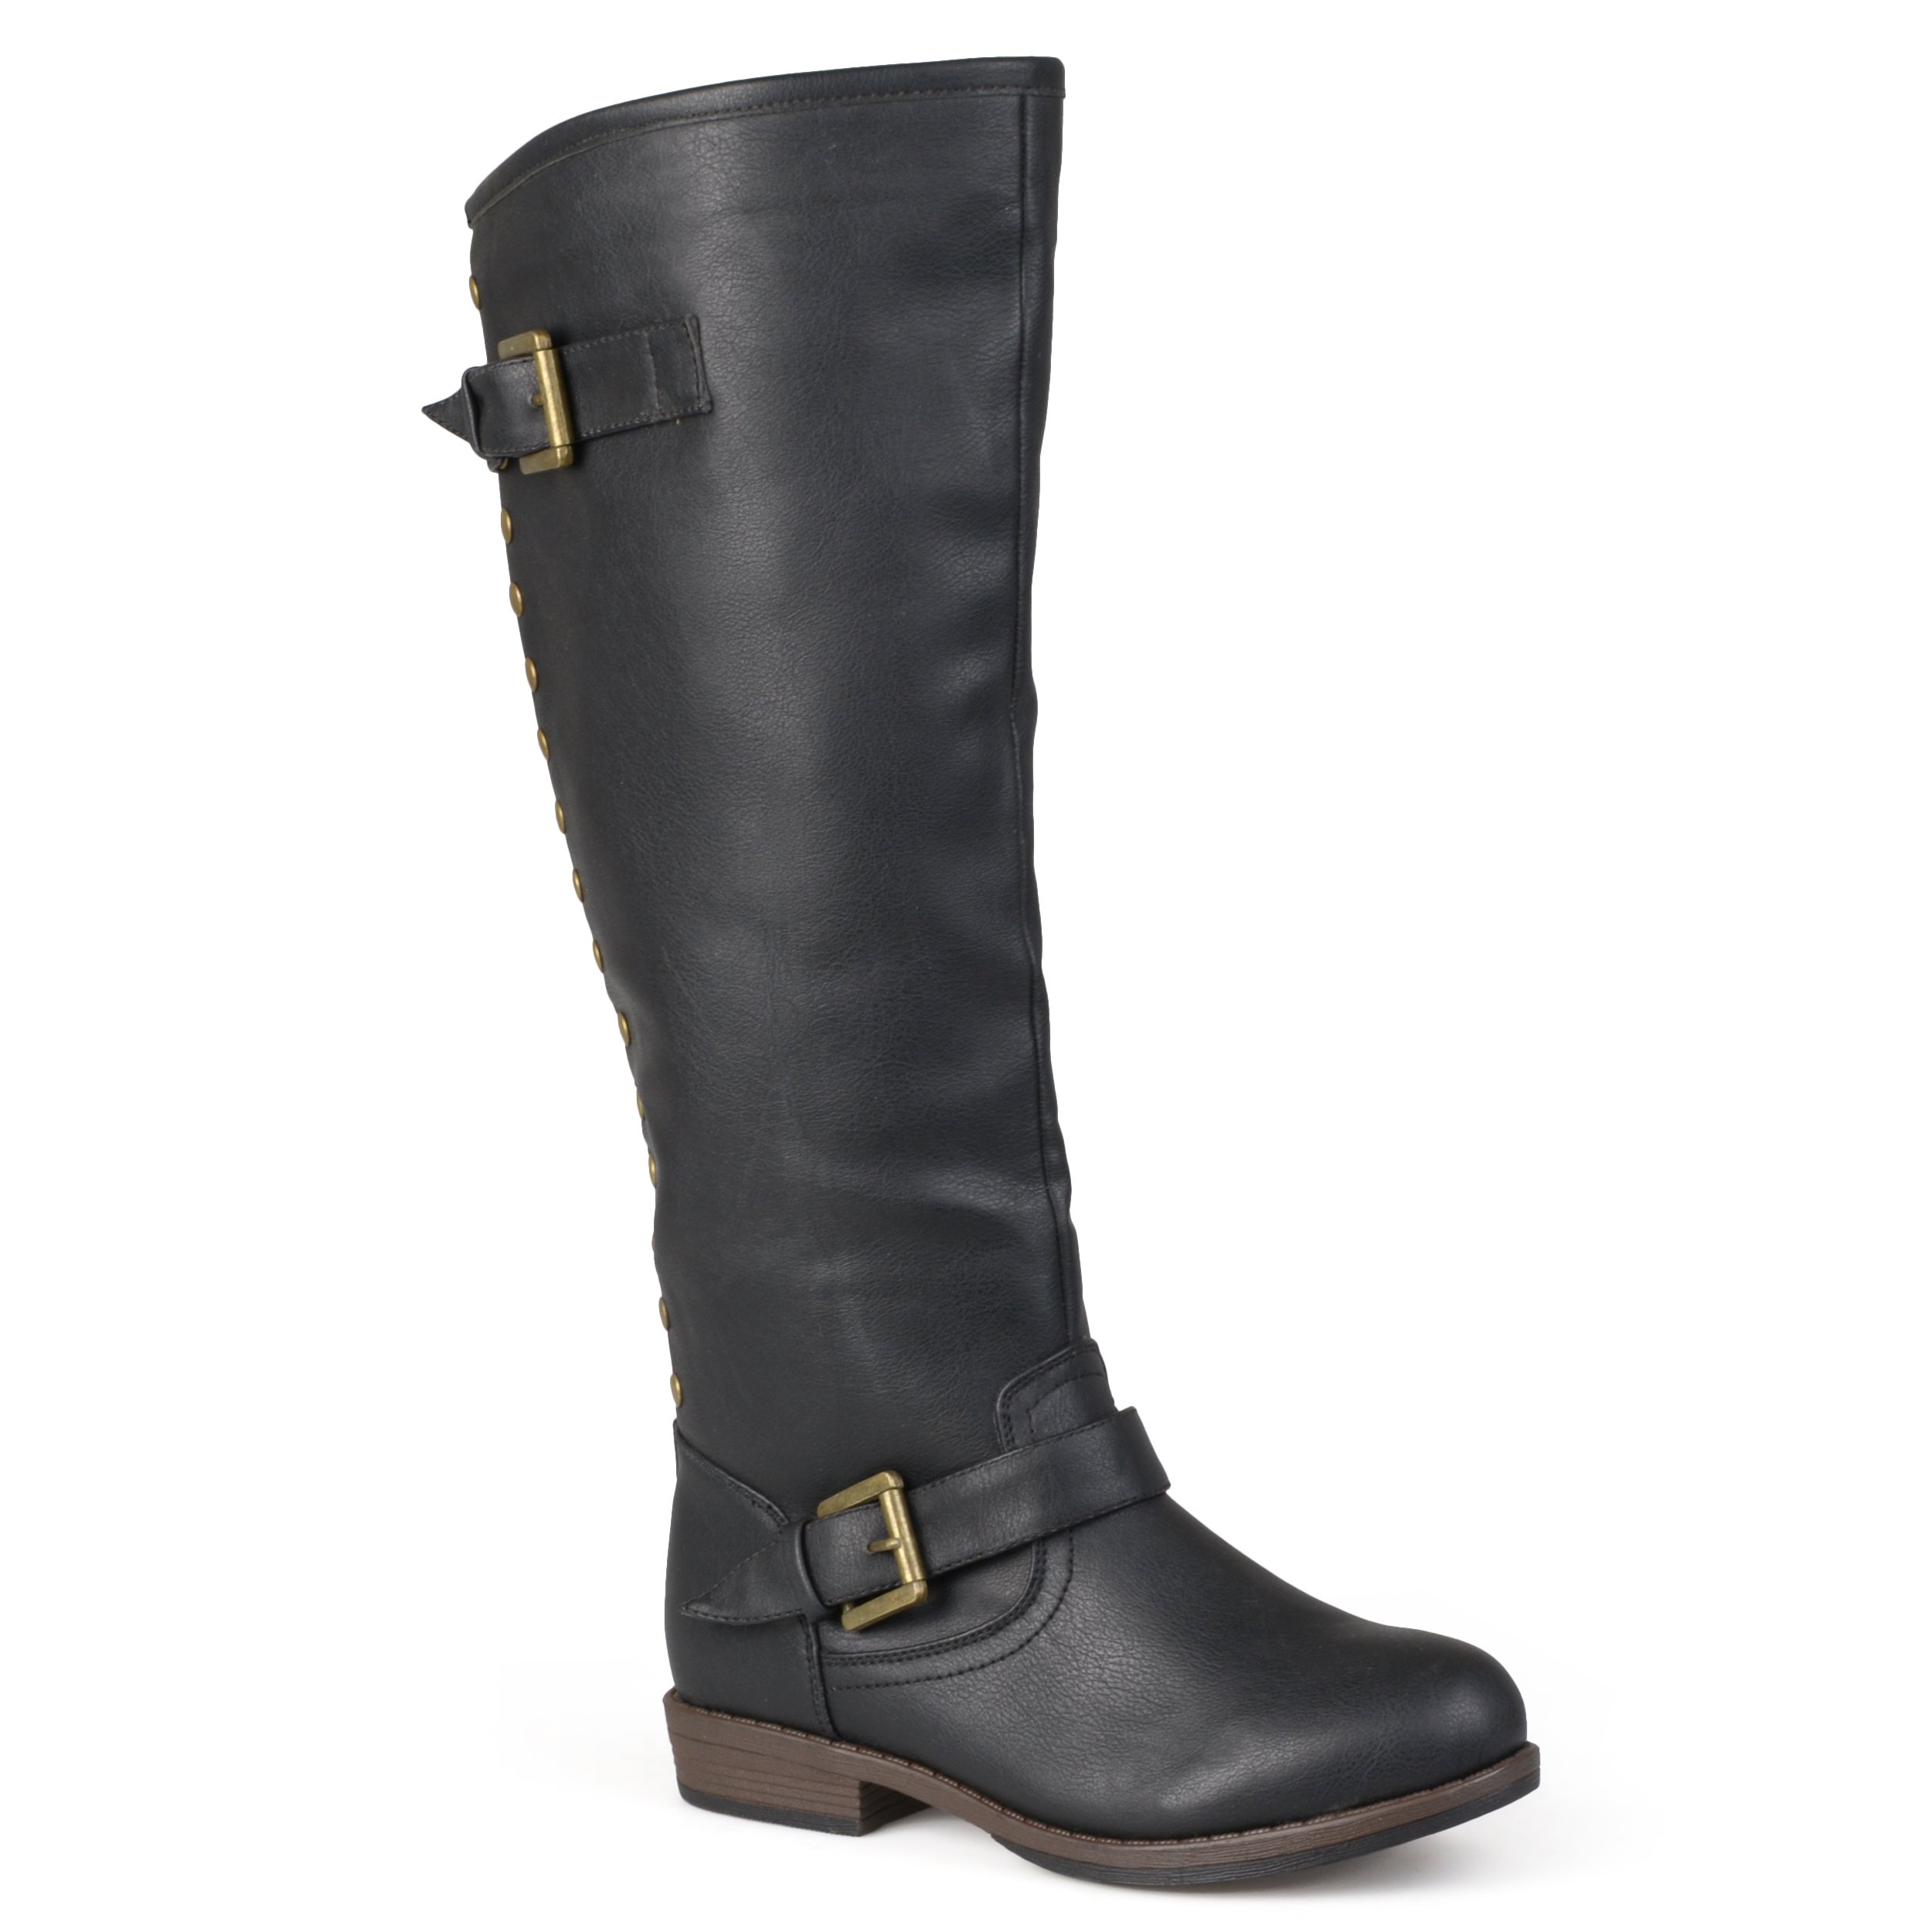 Journee Collection Womens Regular Sized Wide-Calf Studded Knee-High Riding Boots Black, 10 Regular US